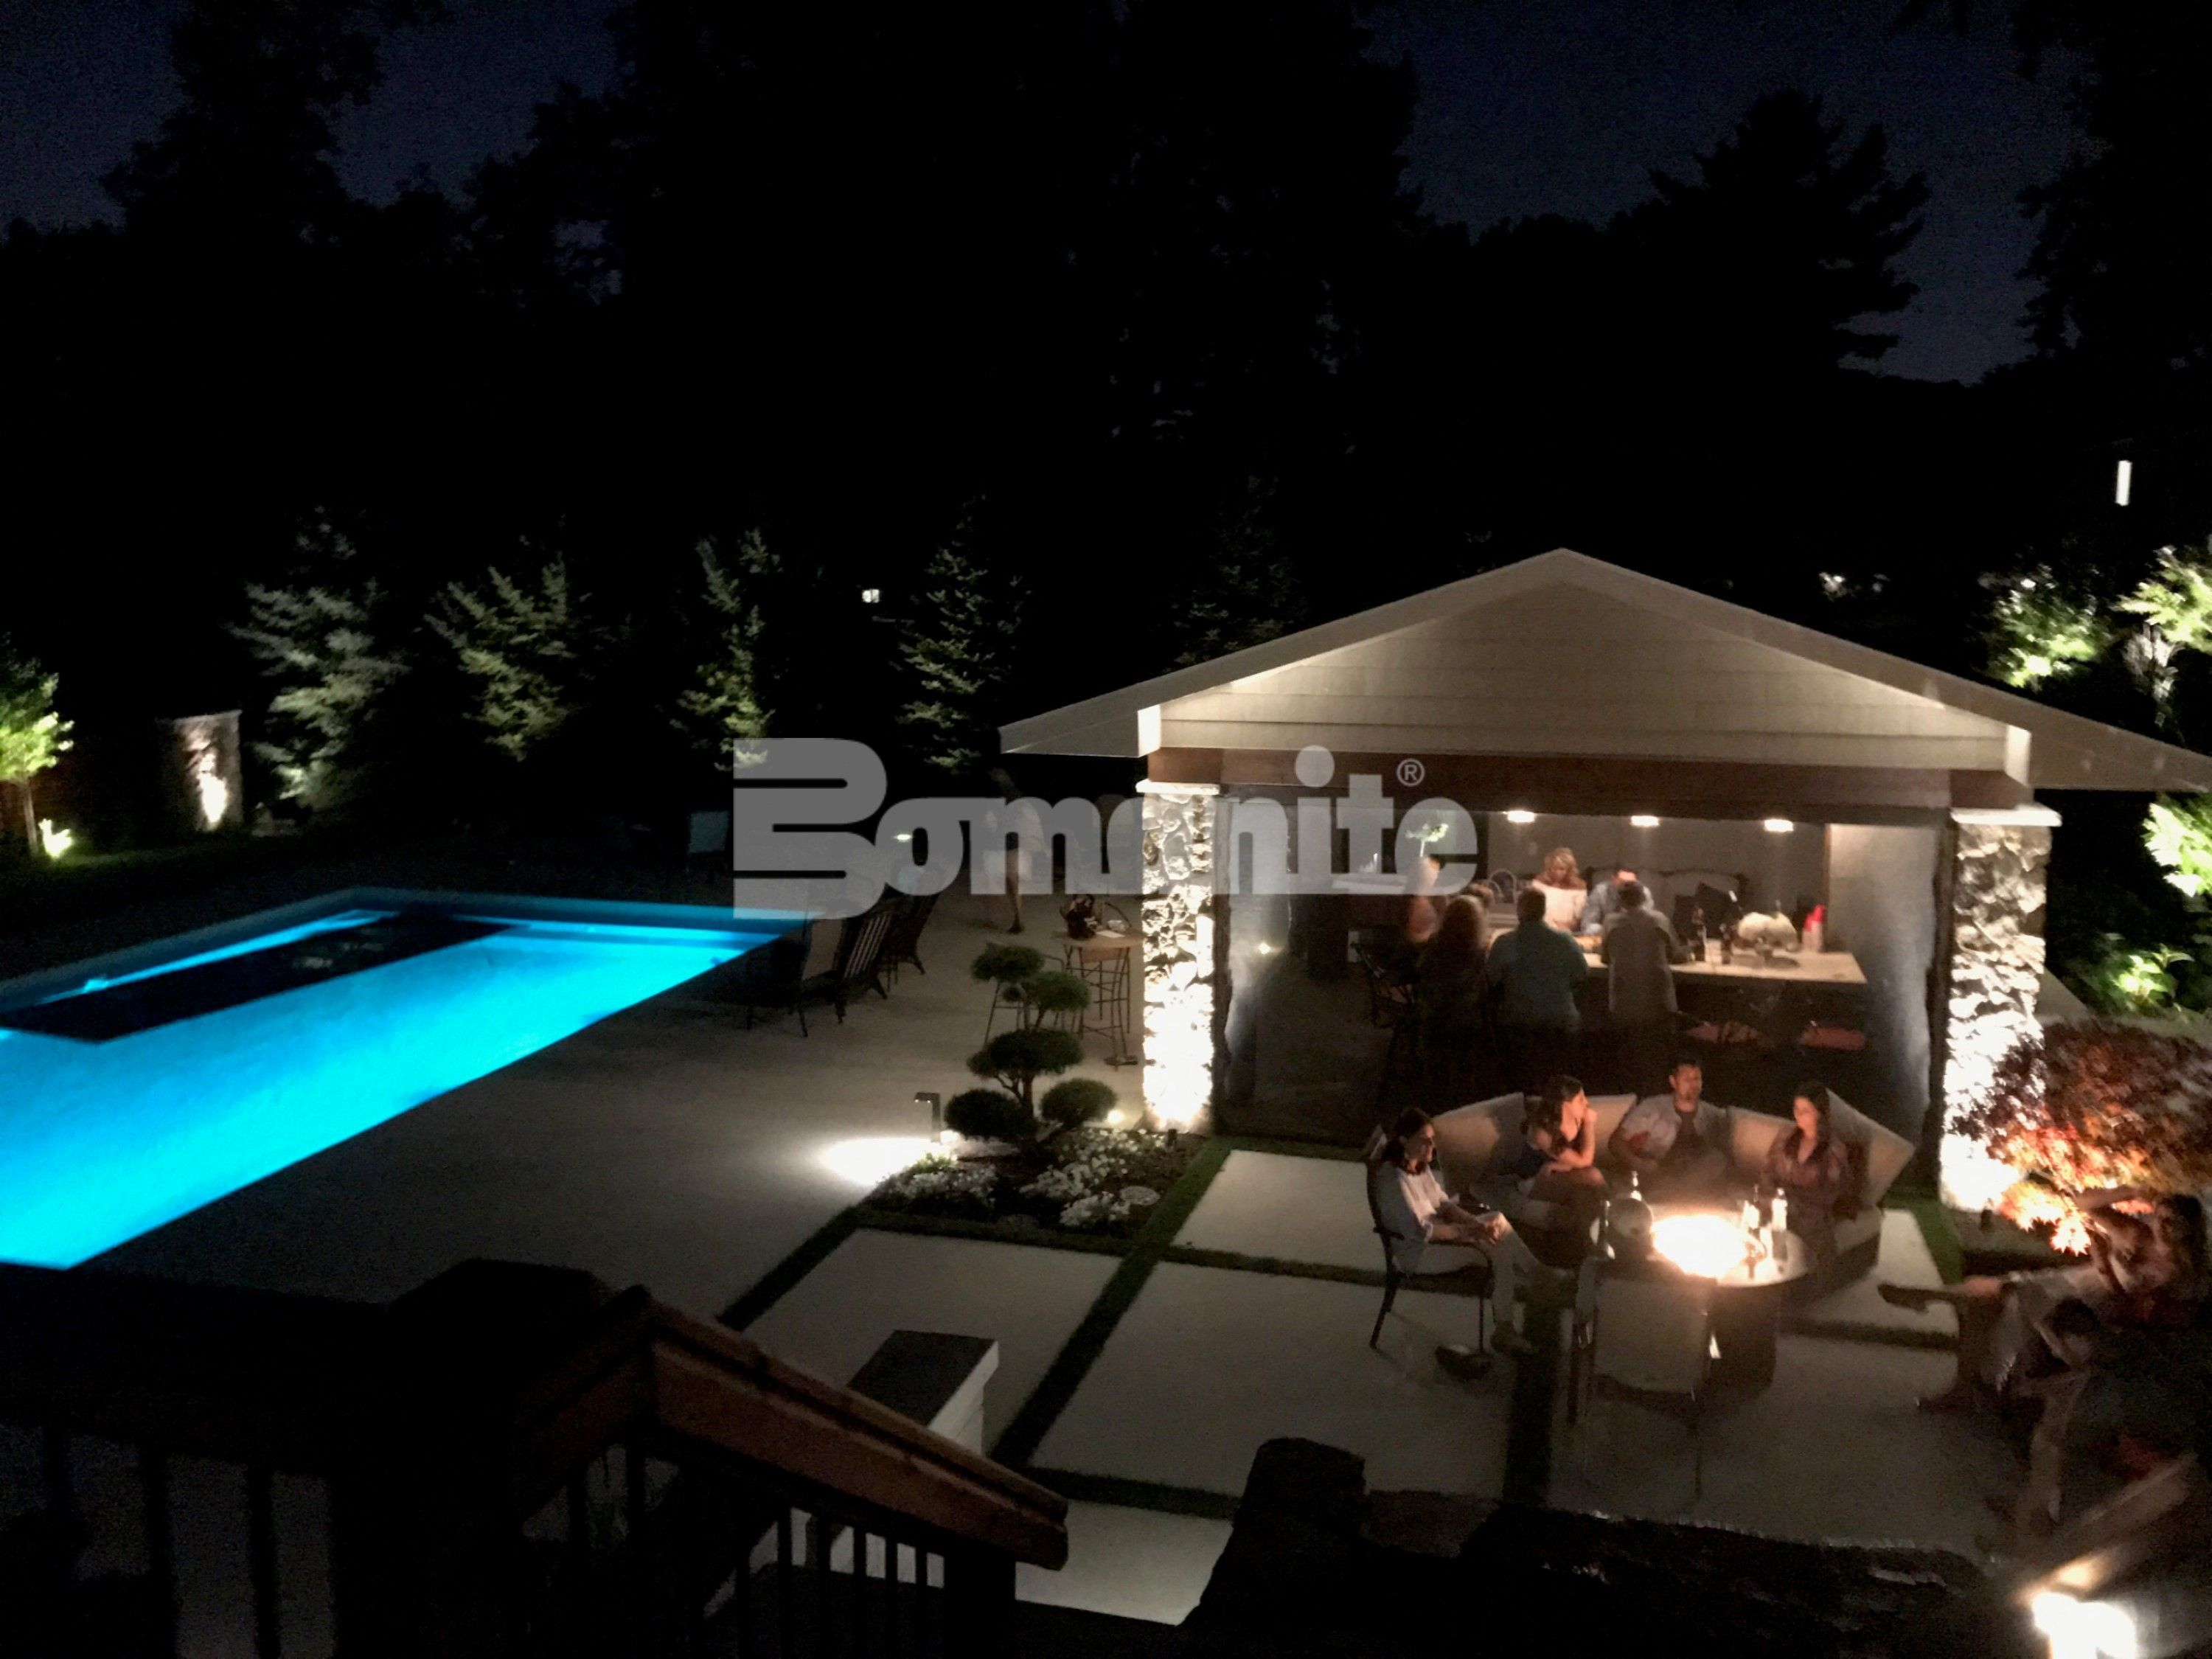 Backyard Resort Pool Deck by Concrete Arts exhibiting many of the Bomanite Decorative Concrete Systems creating a stunning backyard space.